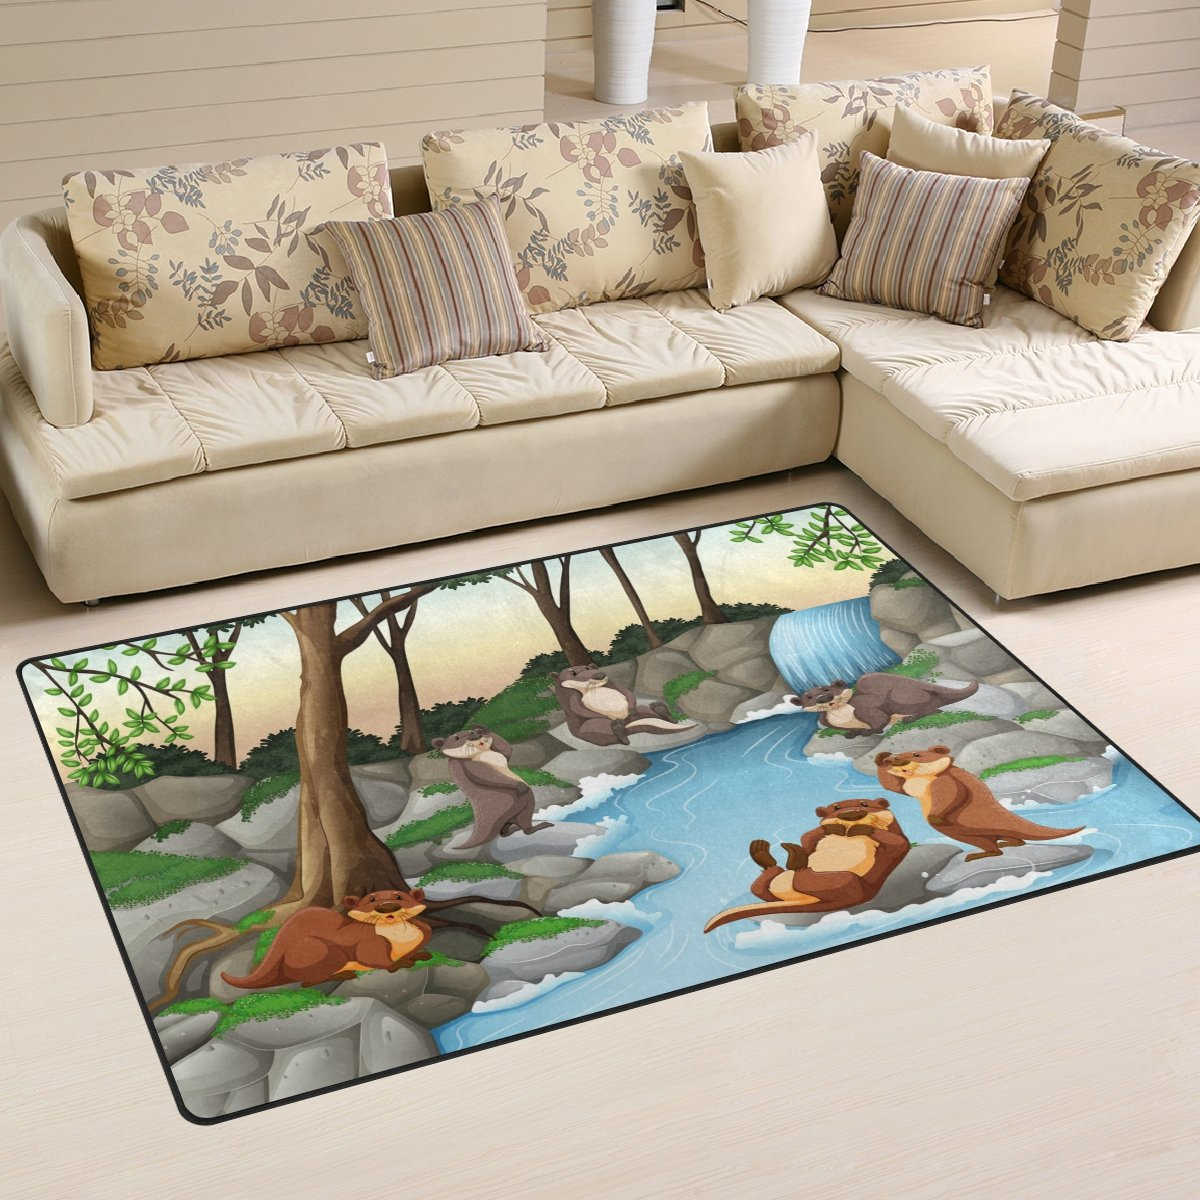 WellLee Animal Area Rug,Beavers Living By The River Illustration Floor Rug Non-slip Doormat for Living Dining Dorm Room Bedroom Decor 60x39 Inch